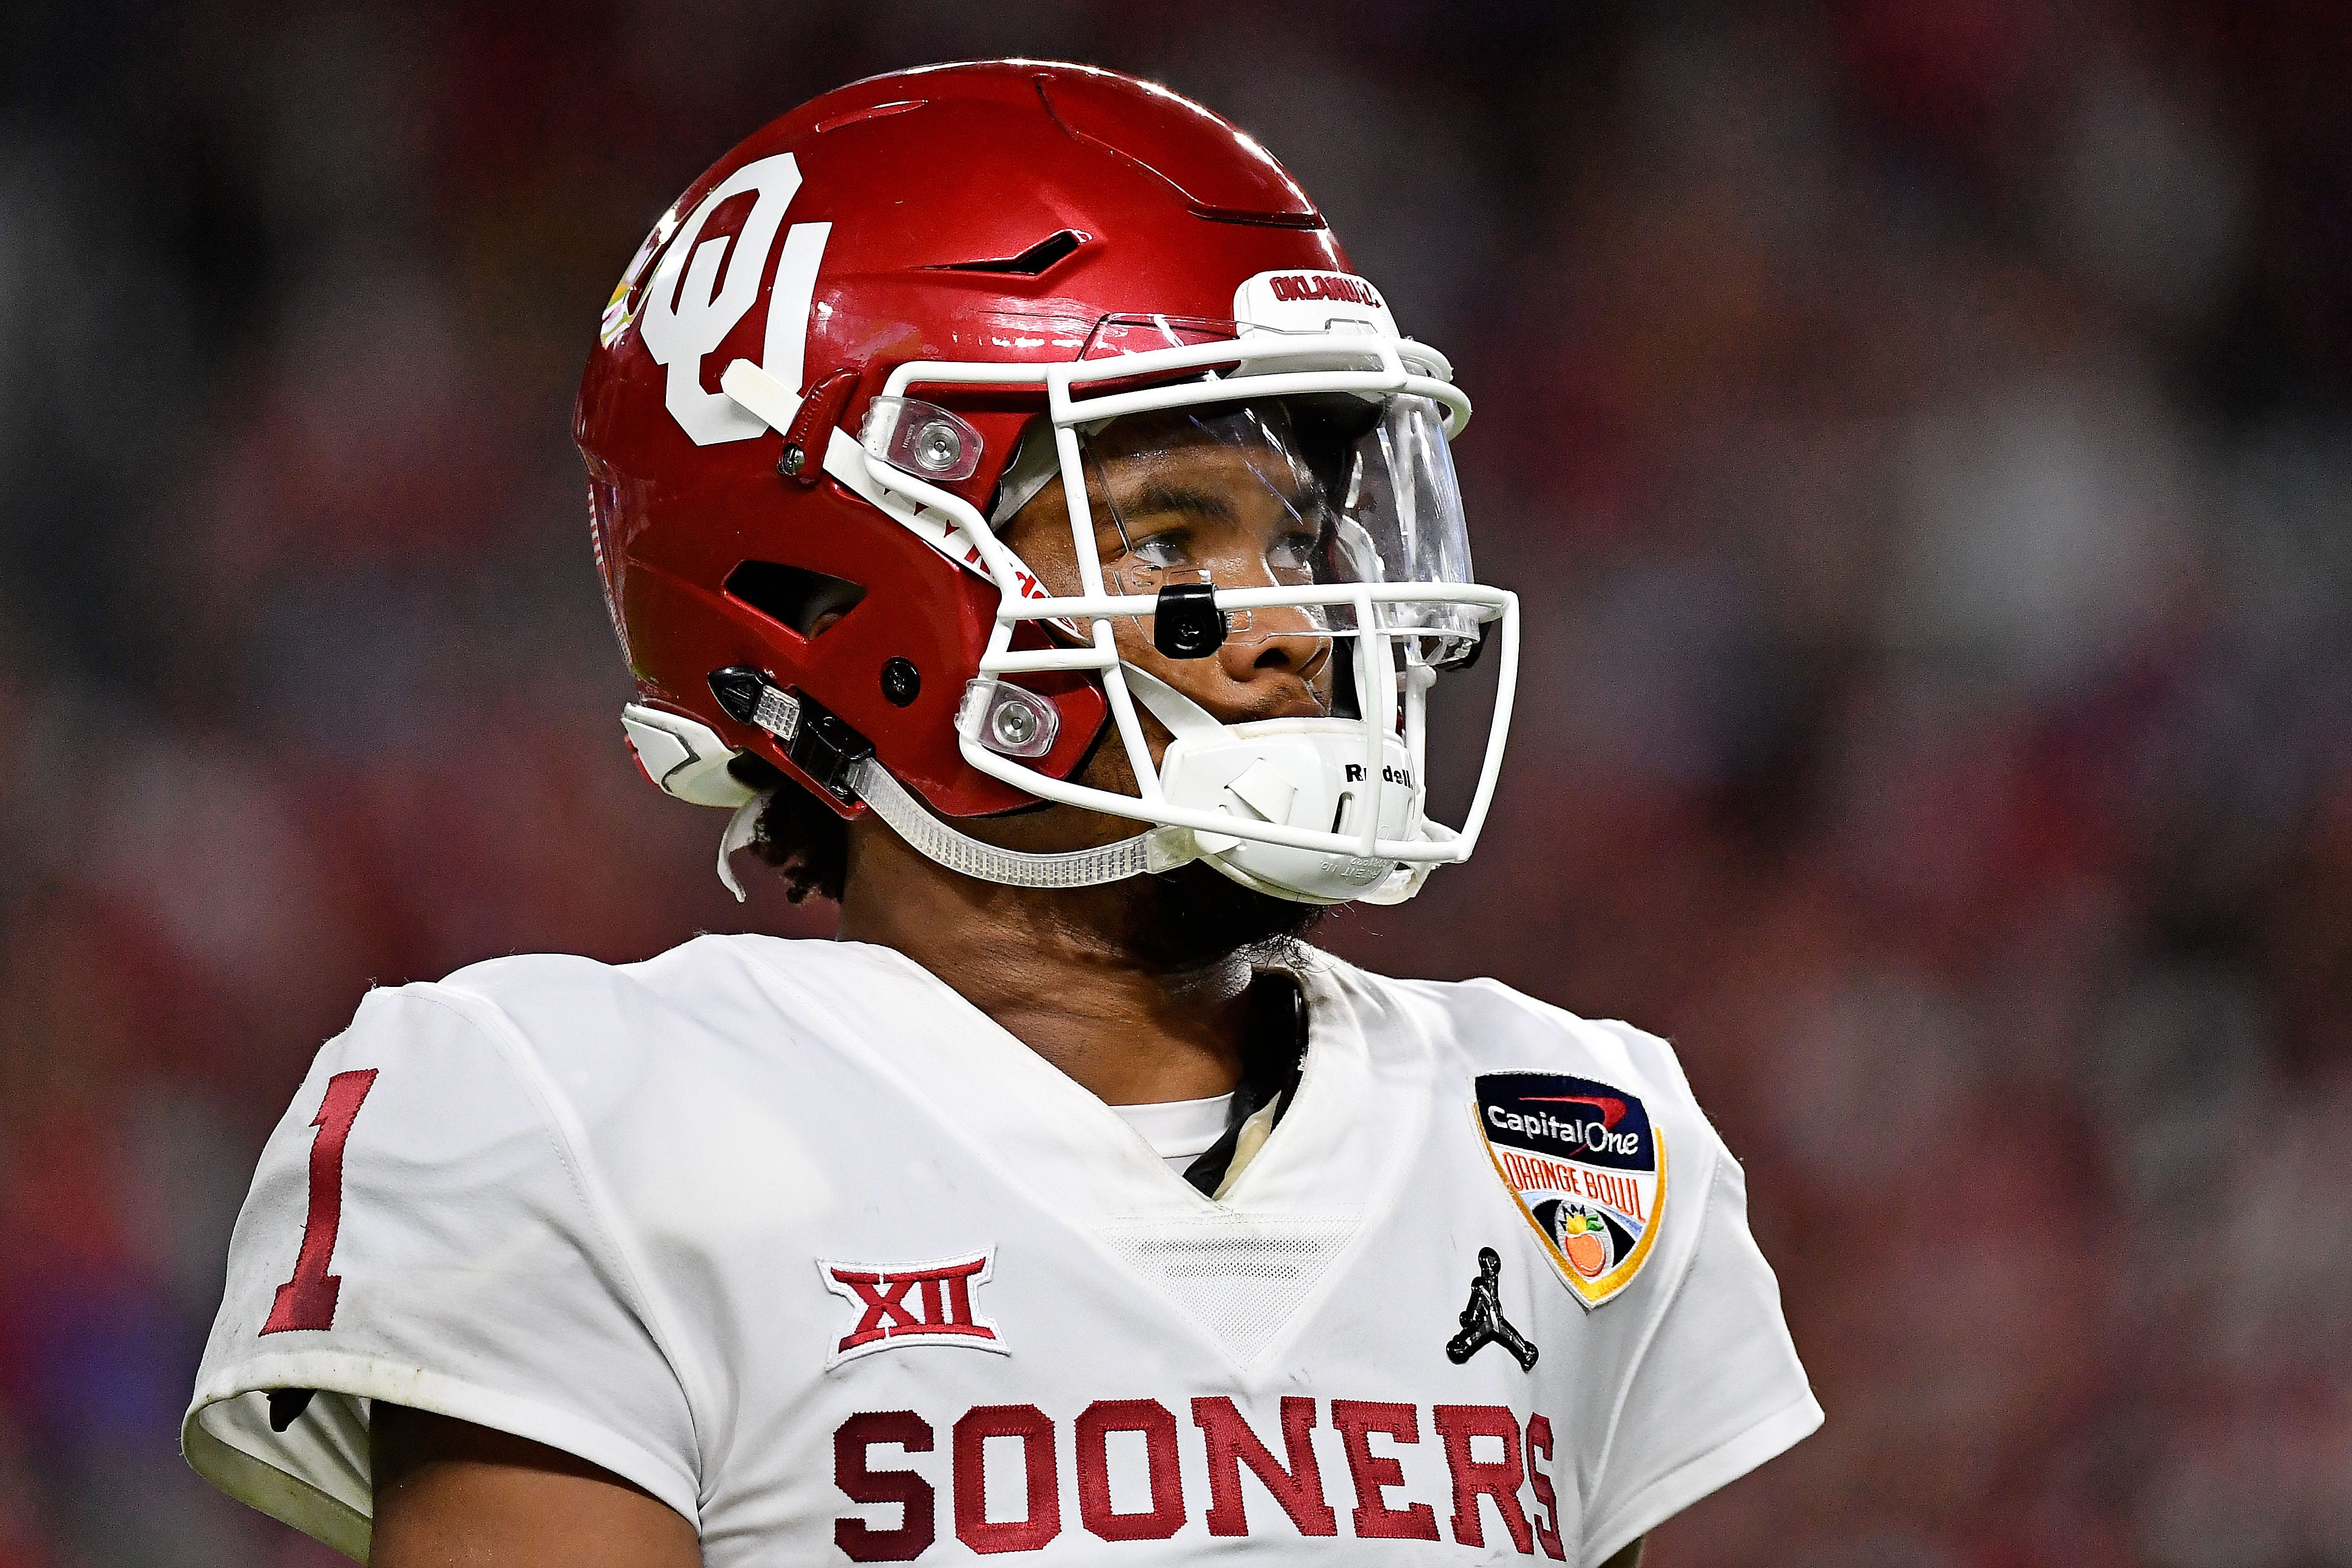 Could the New York Giants grab Kyler Murray with the 6th overall pick?